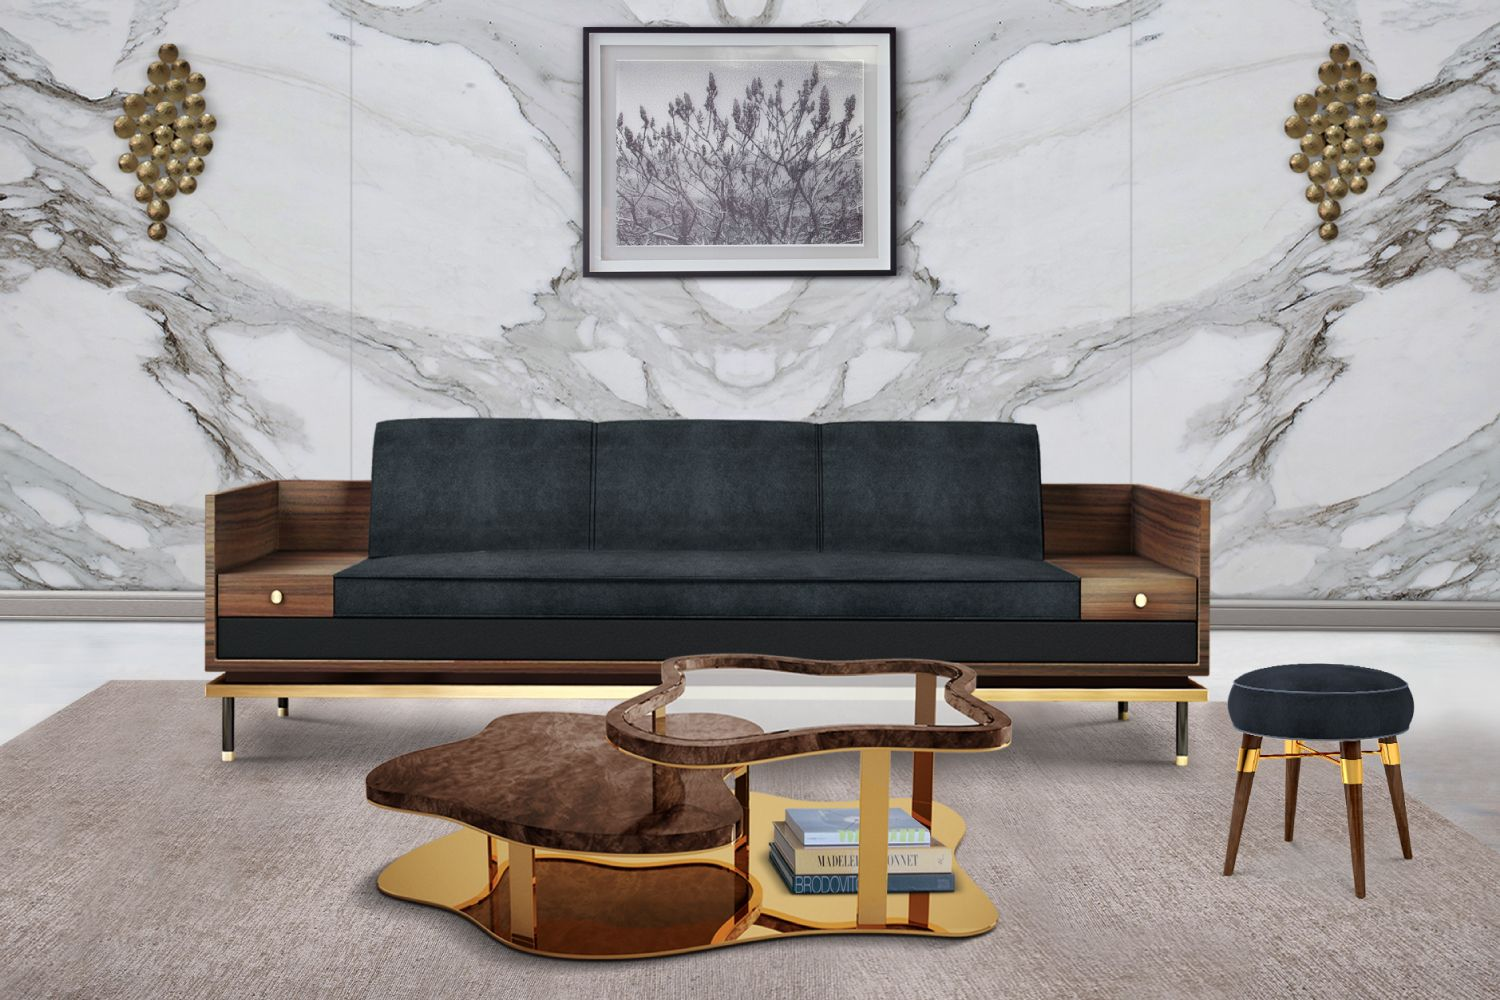 Marina modern center table by malabar center table living rooms marina modern center table by malabar geotapseo Image collections